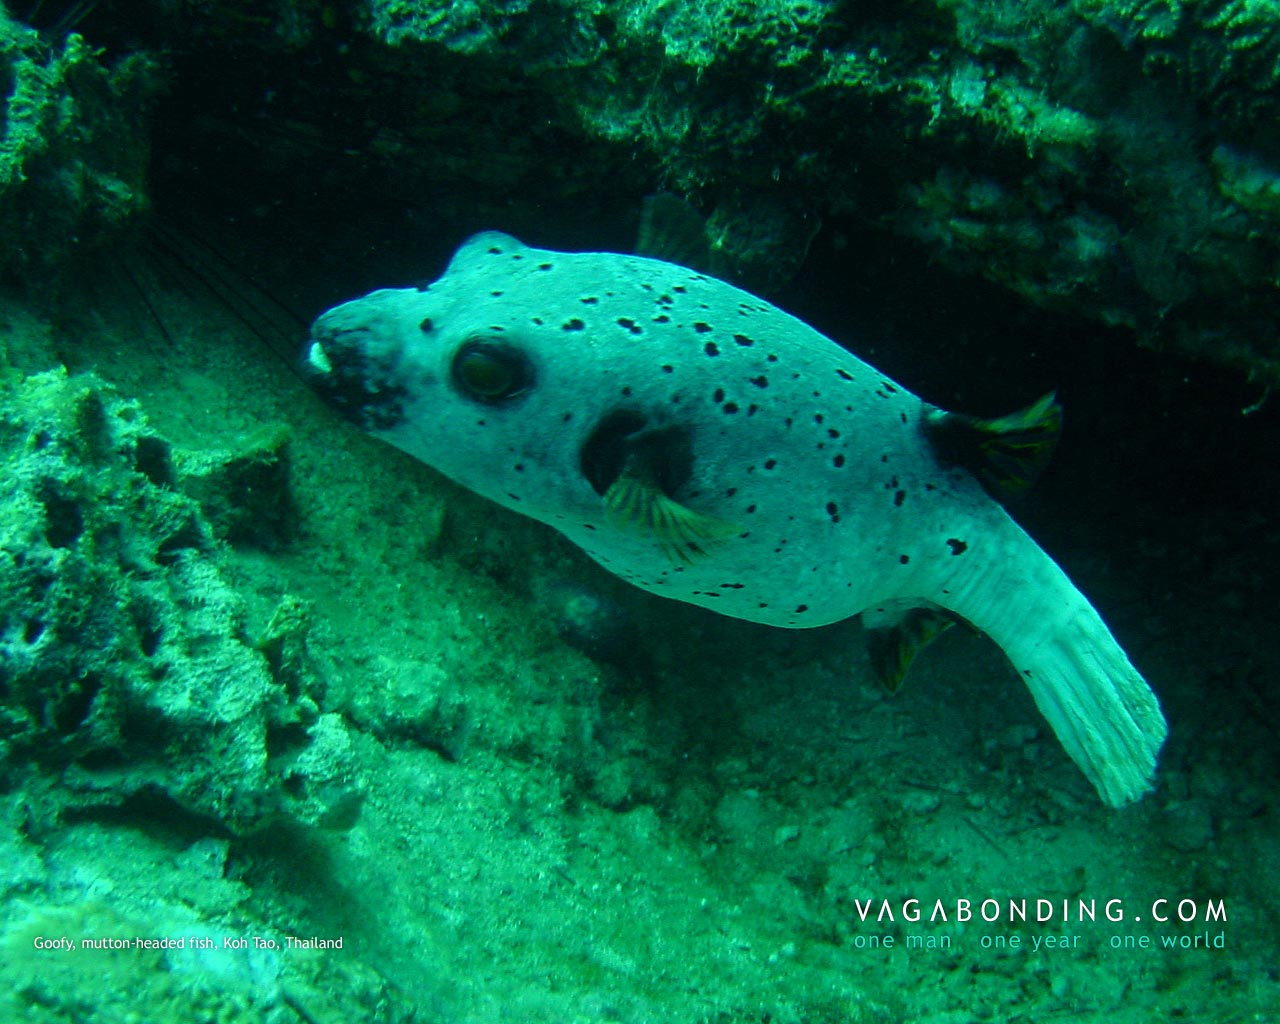 Goofy, mutton-headed fish, Koh Tao, Thailand